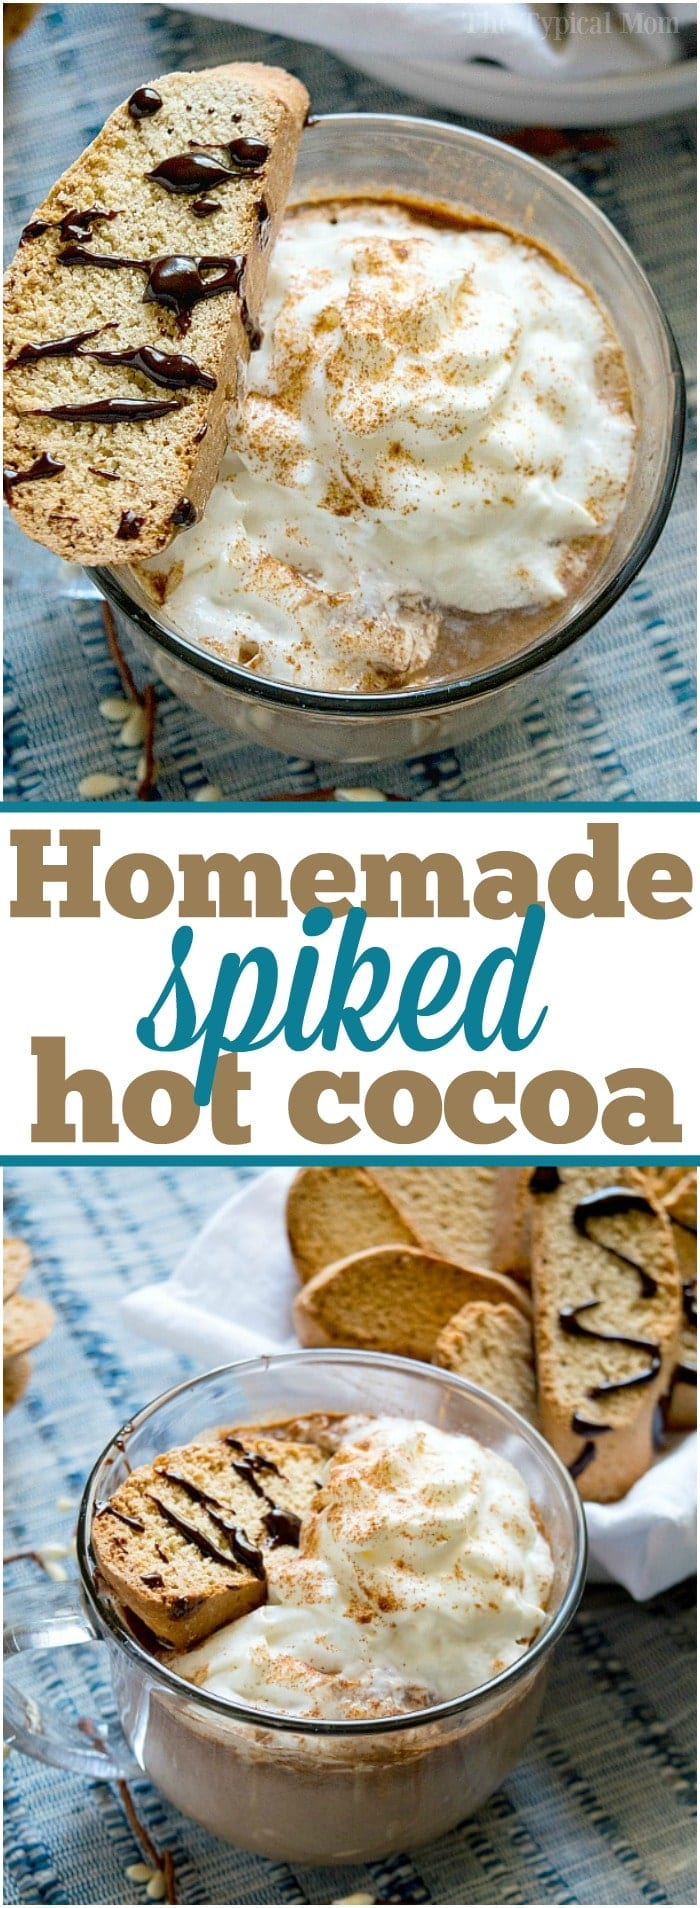 How to make hot chocolate from scratch and spiked if you want to as well! Perfect hot drink during the Winter that's easy to throw together and delicious! #hotchocolate #homemade #easy #spiked #crockpot